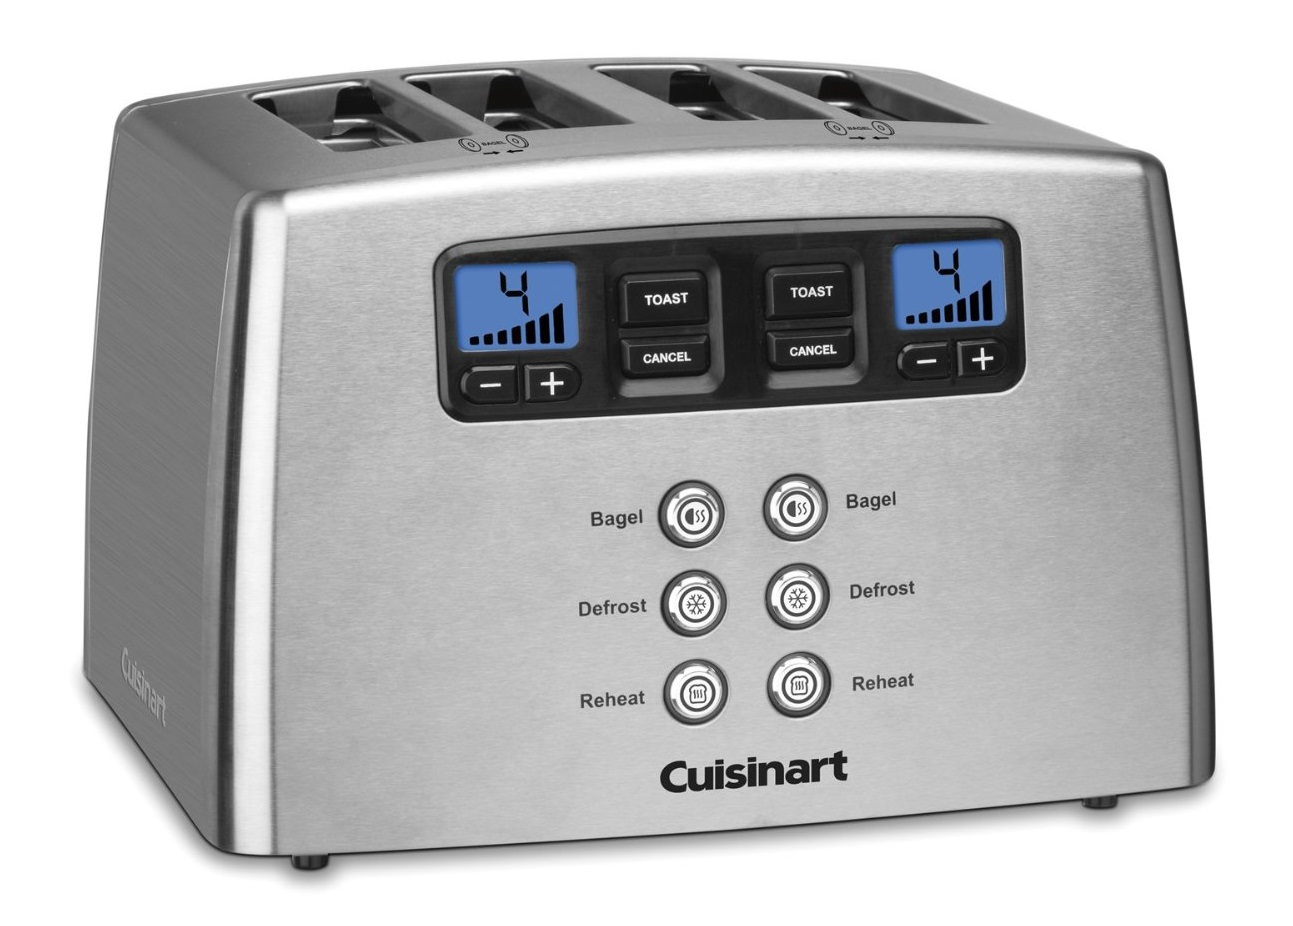 Cuisinart Cpt 440 Toaster Review What Are The Complaints